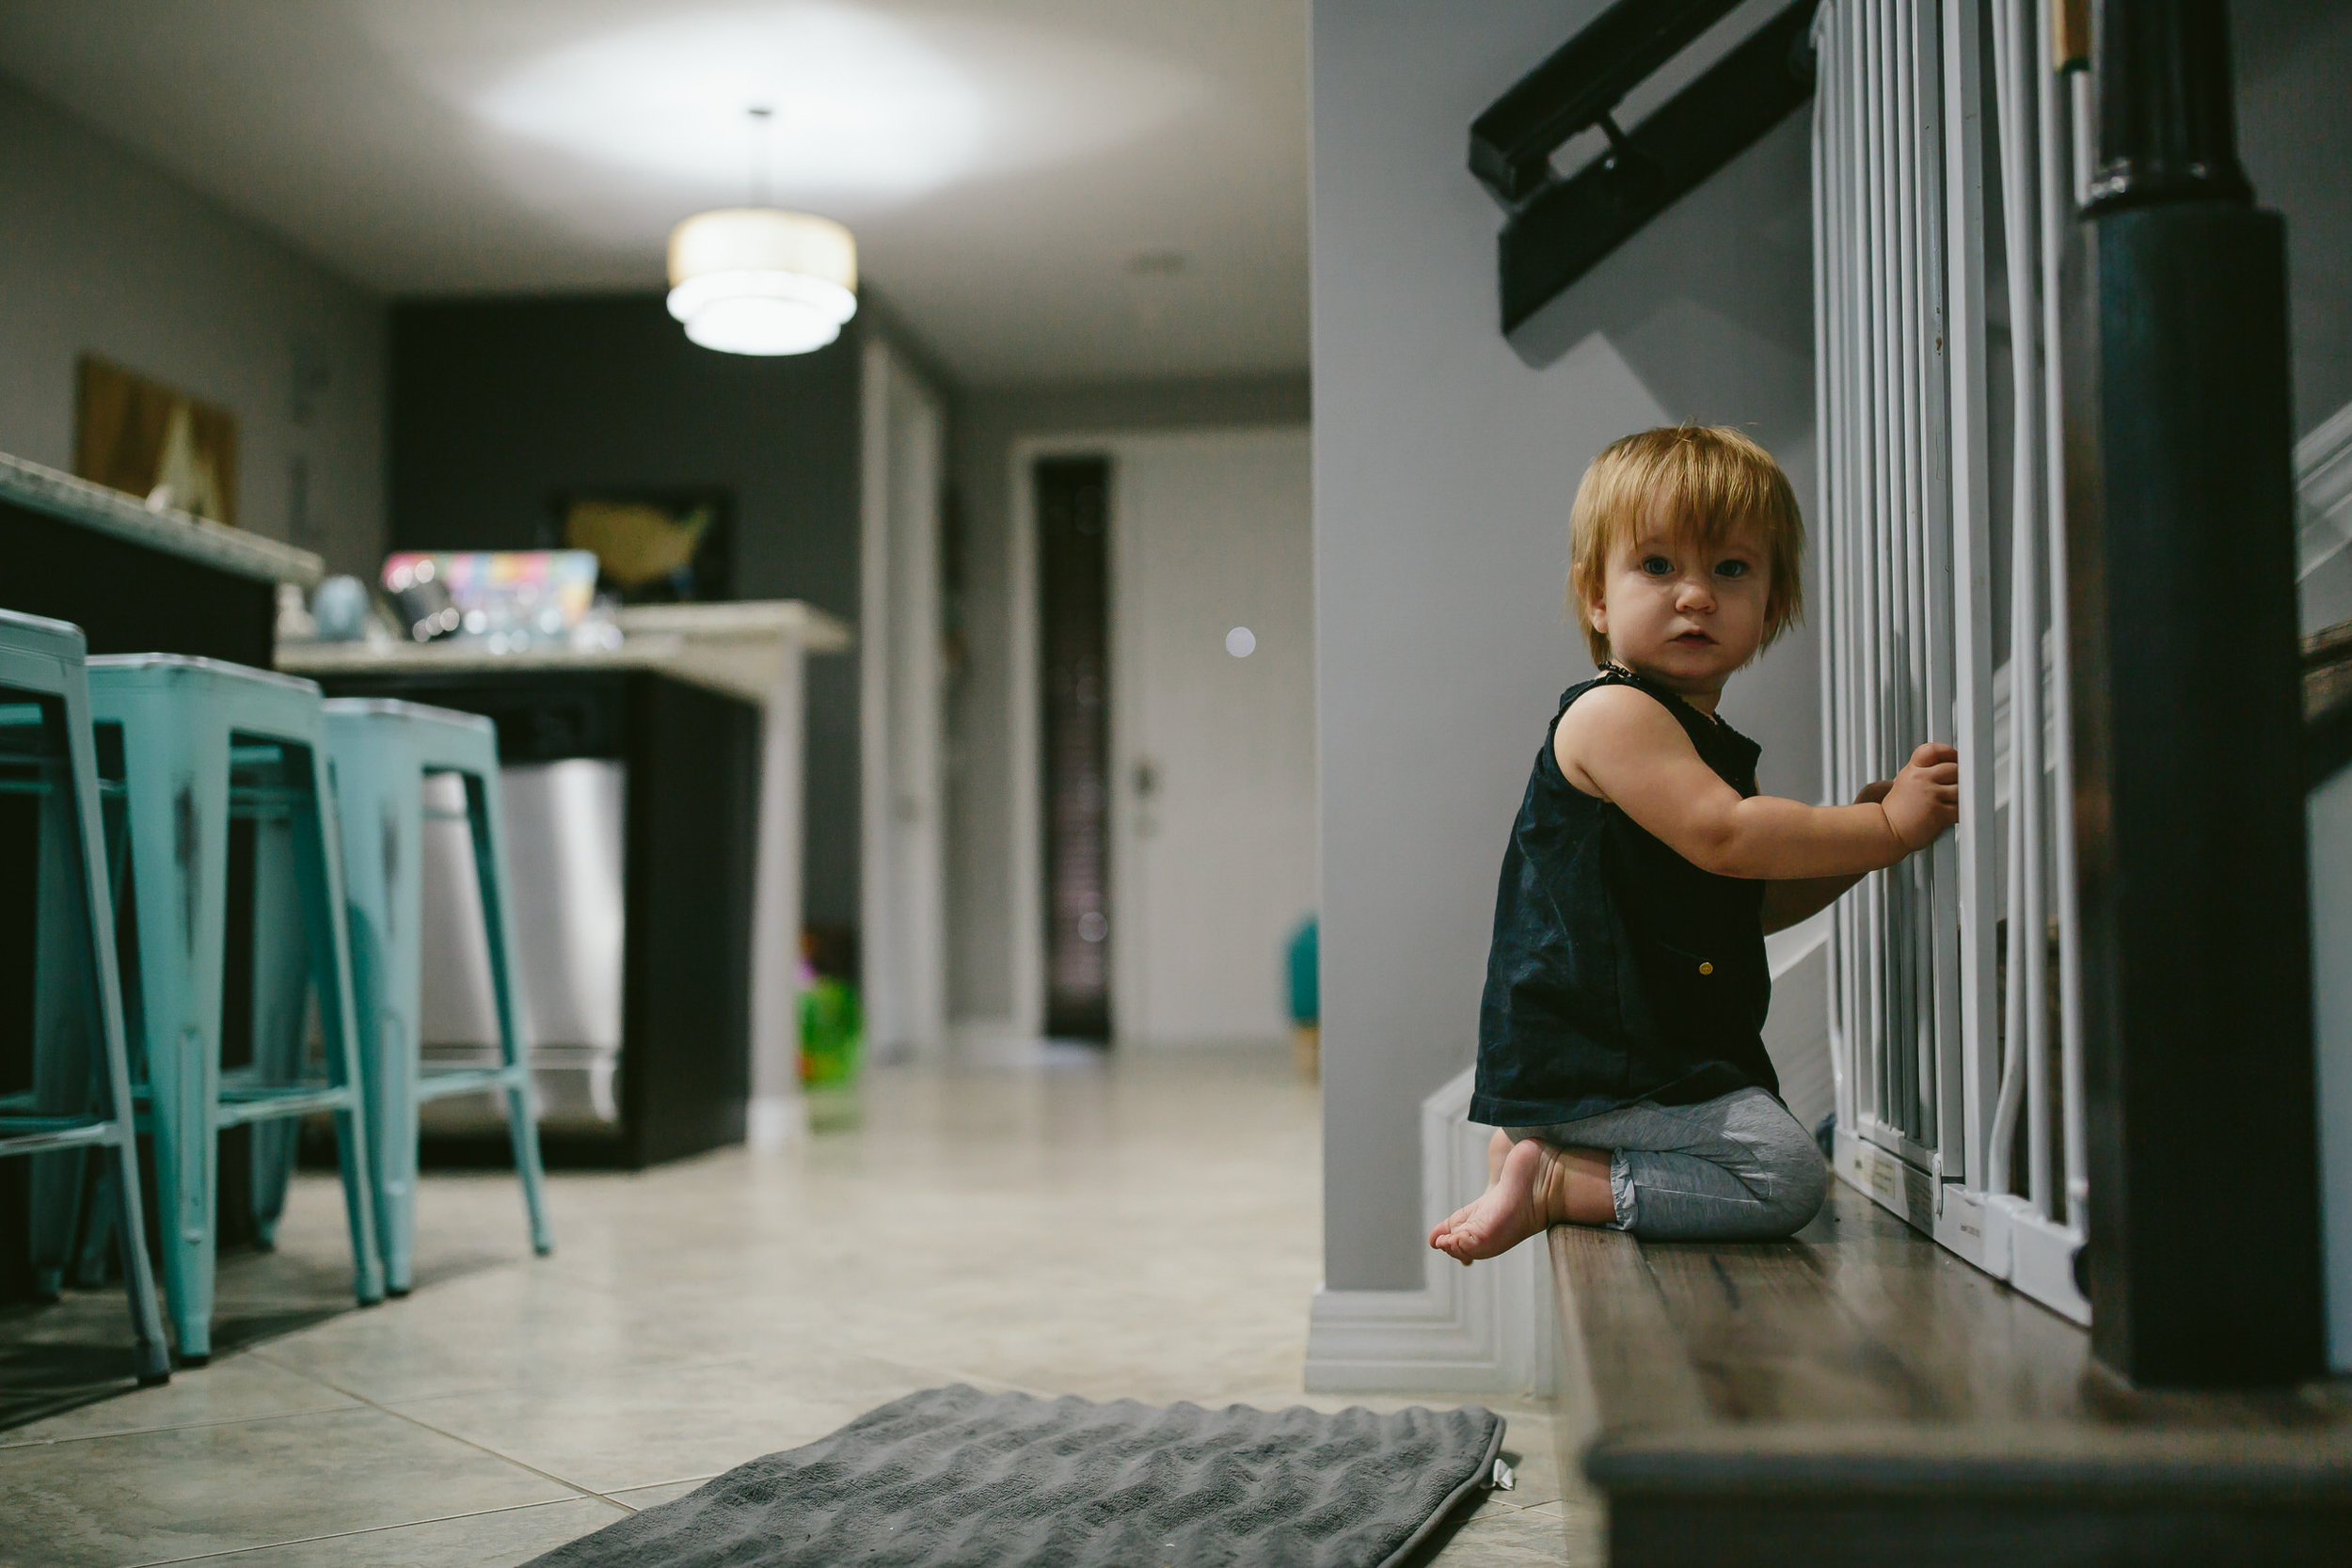 toddler-day-in-the-life-south-florida-family-photographer-tiny-house-photo-41.jpg